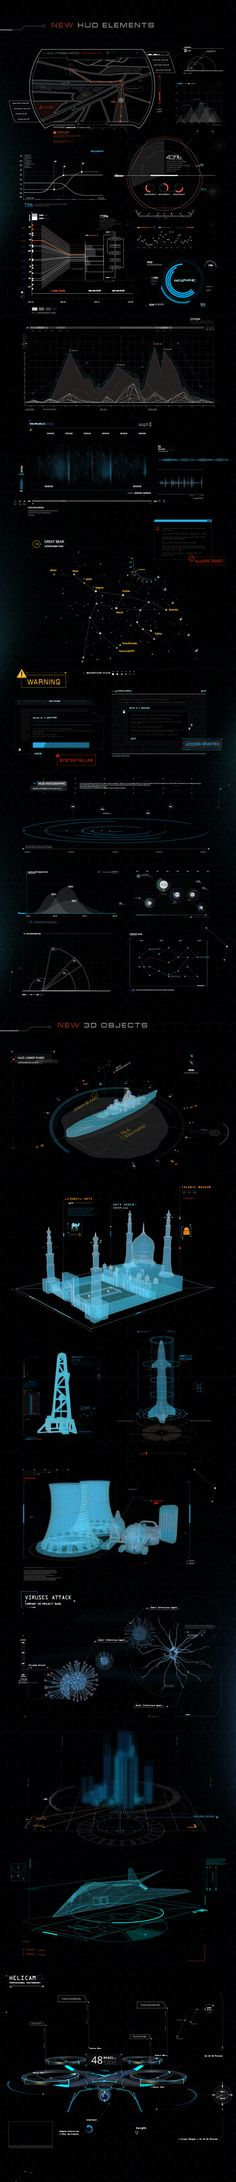 About Quantum HUD Infographic :    	After releasing most popular HUD pack (Phantom HUD Infographic) we've decided to take Hitech & HUD world into a new level and guess what...